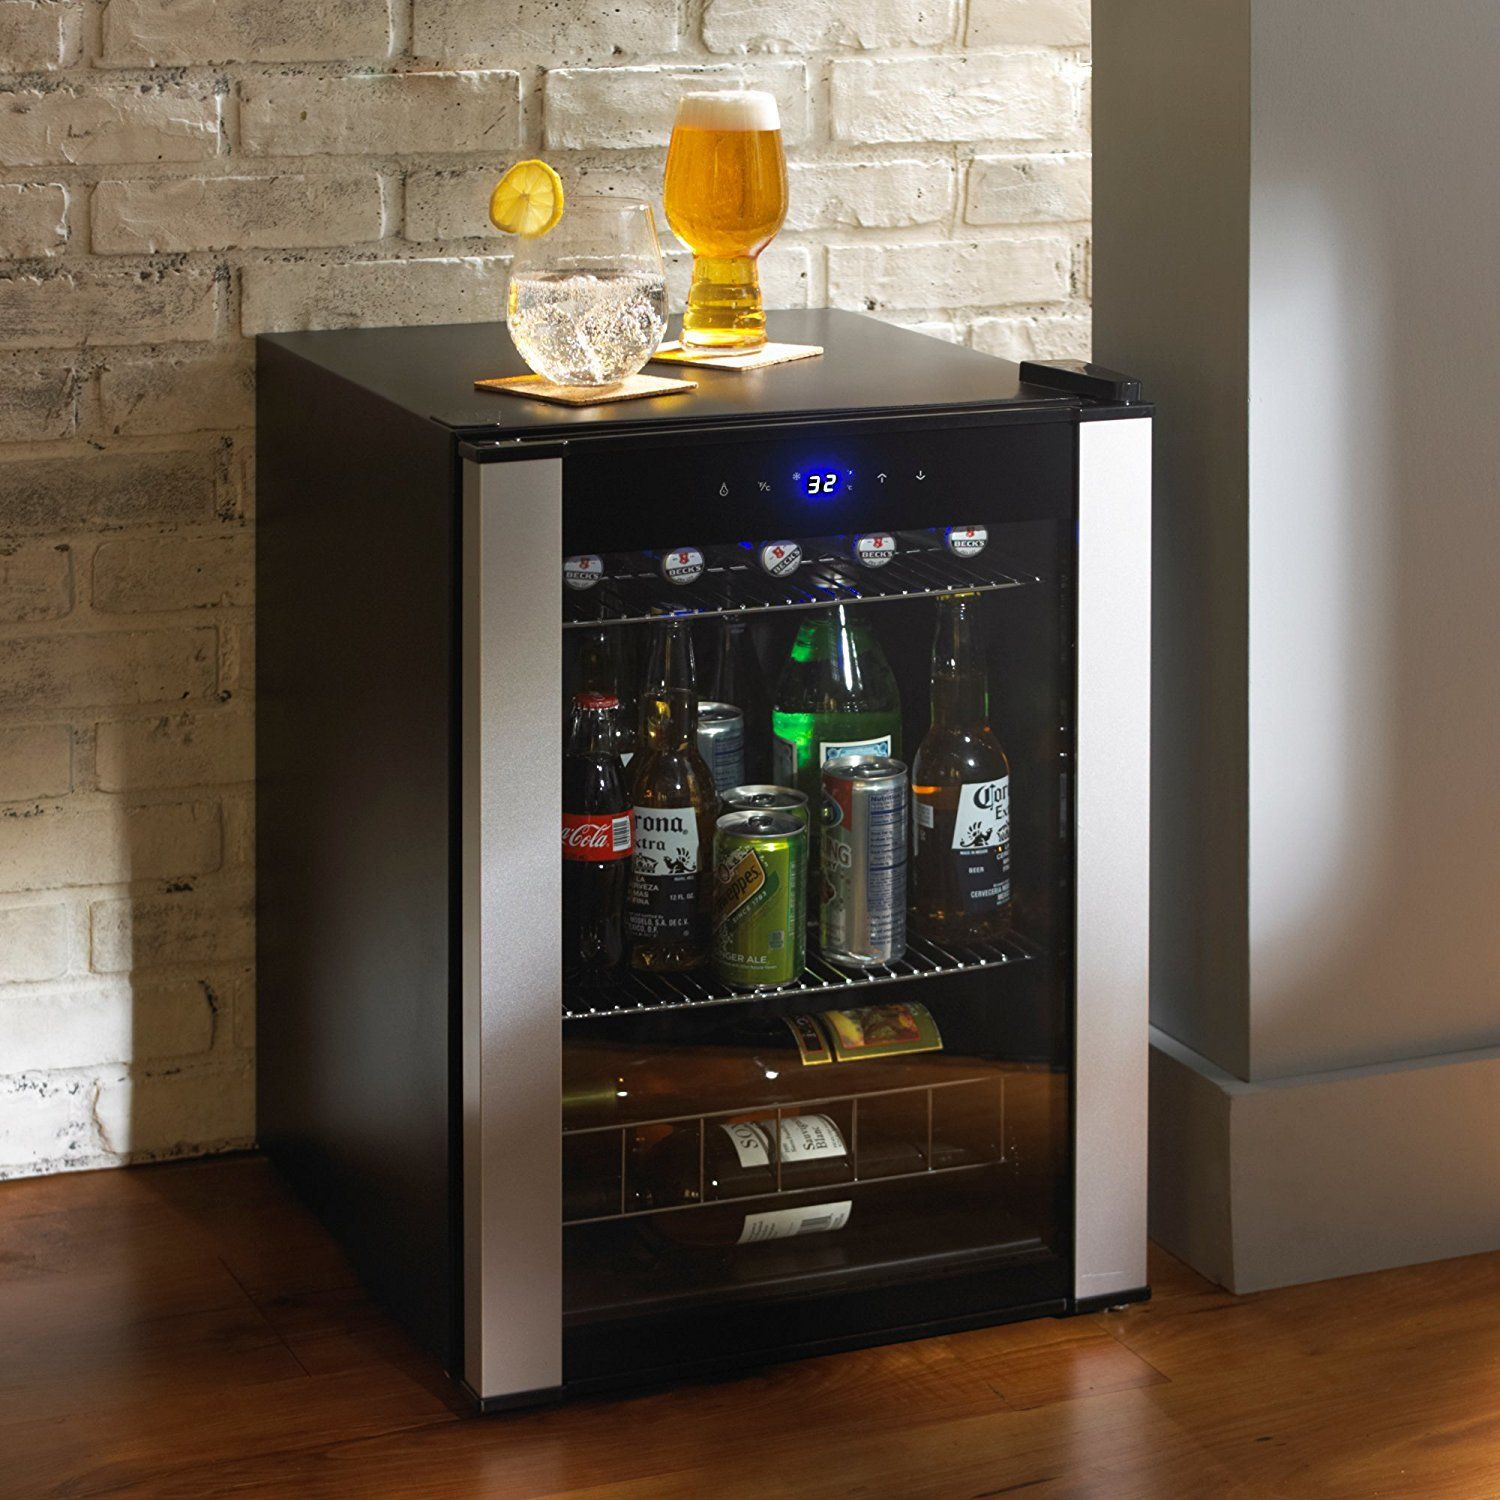 Highest Rated pact Wine Beverage Cooler Refrigerator Counter Top